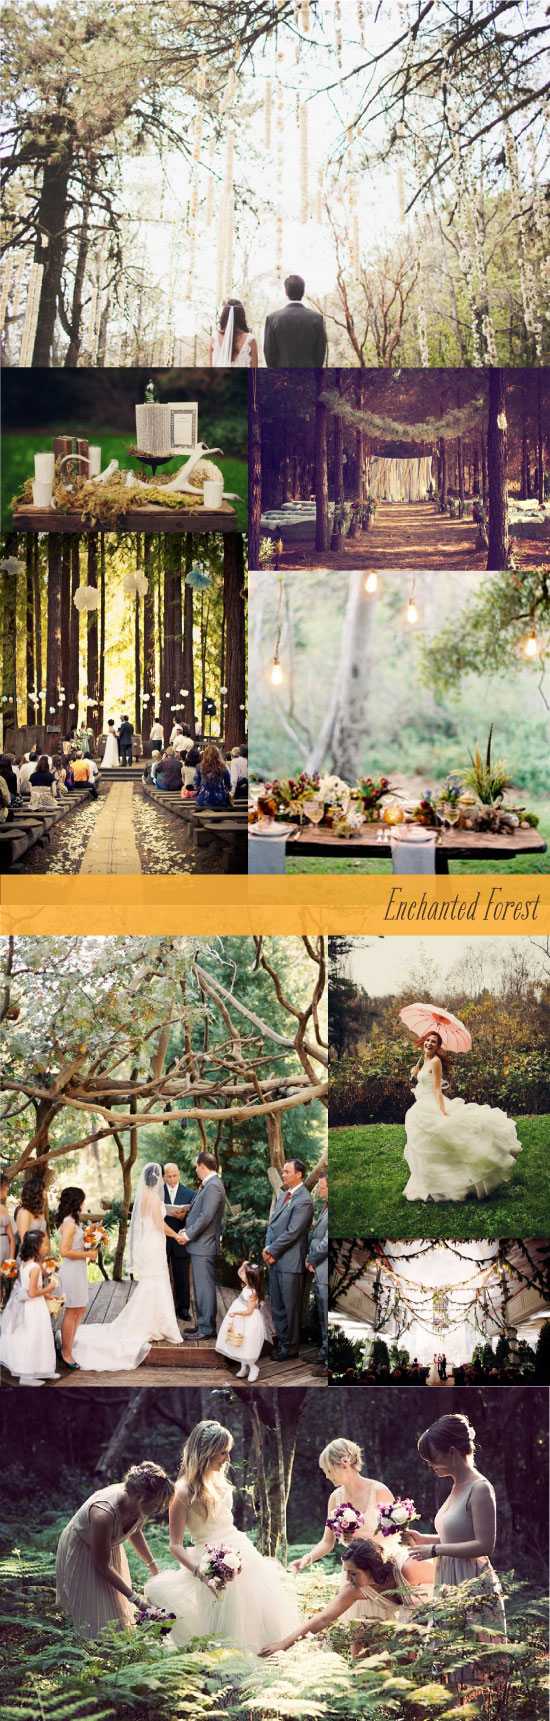 Enchanted Rustic Forest Wedding Inspiration Board